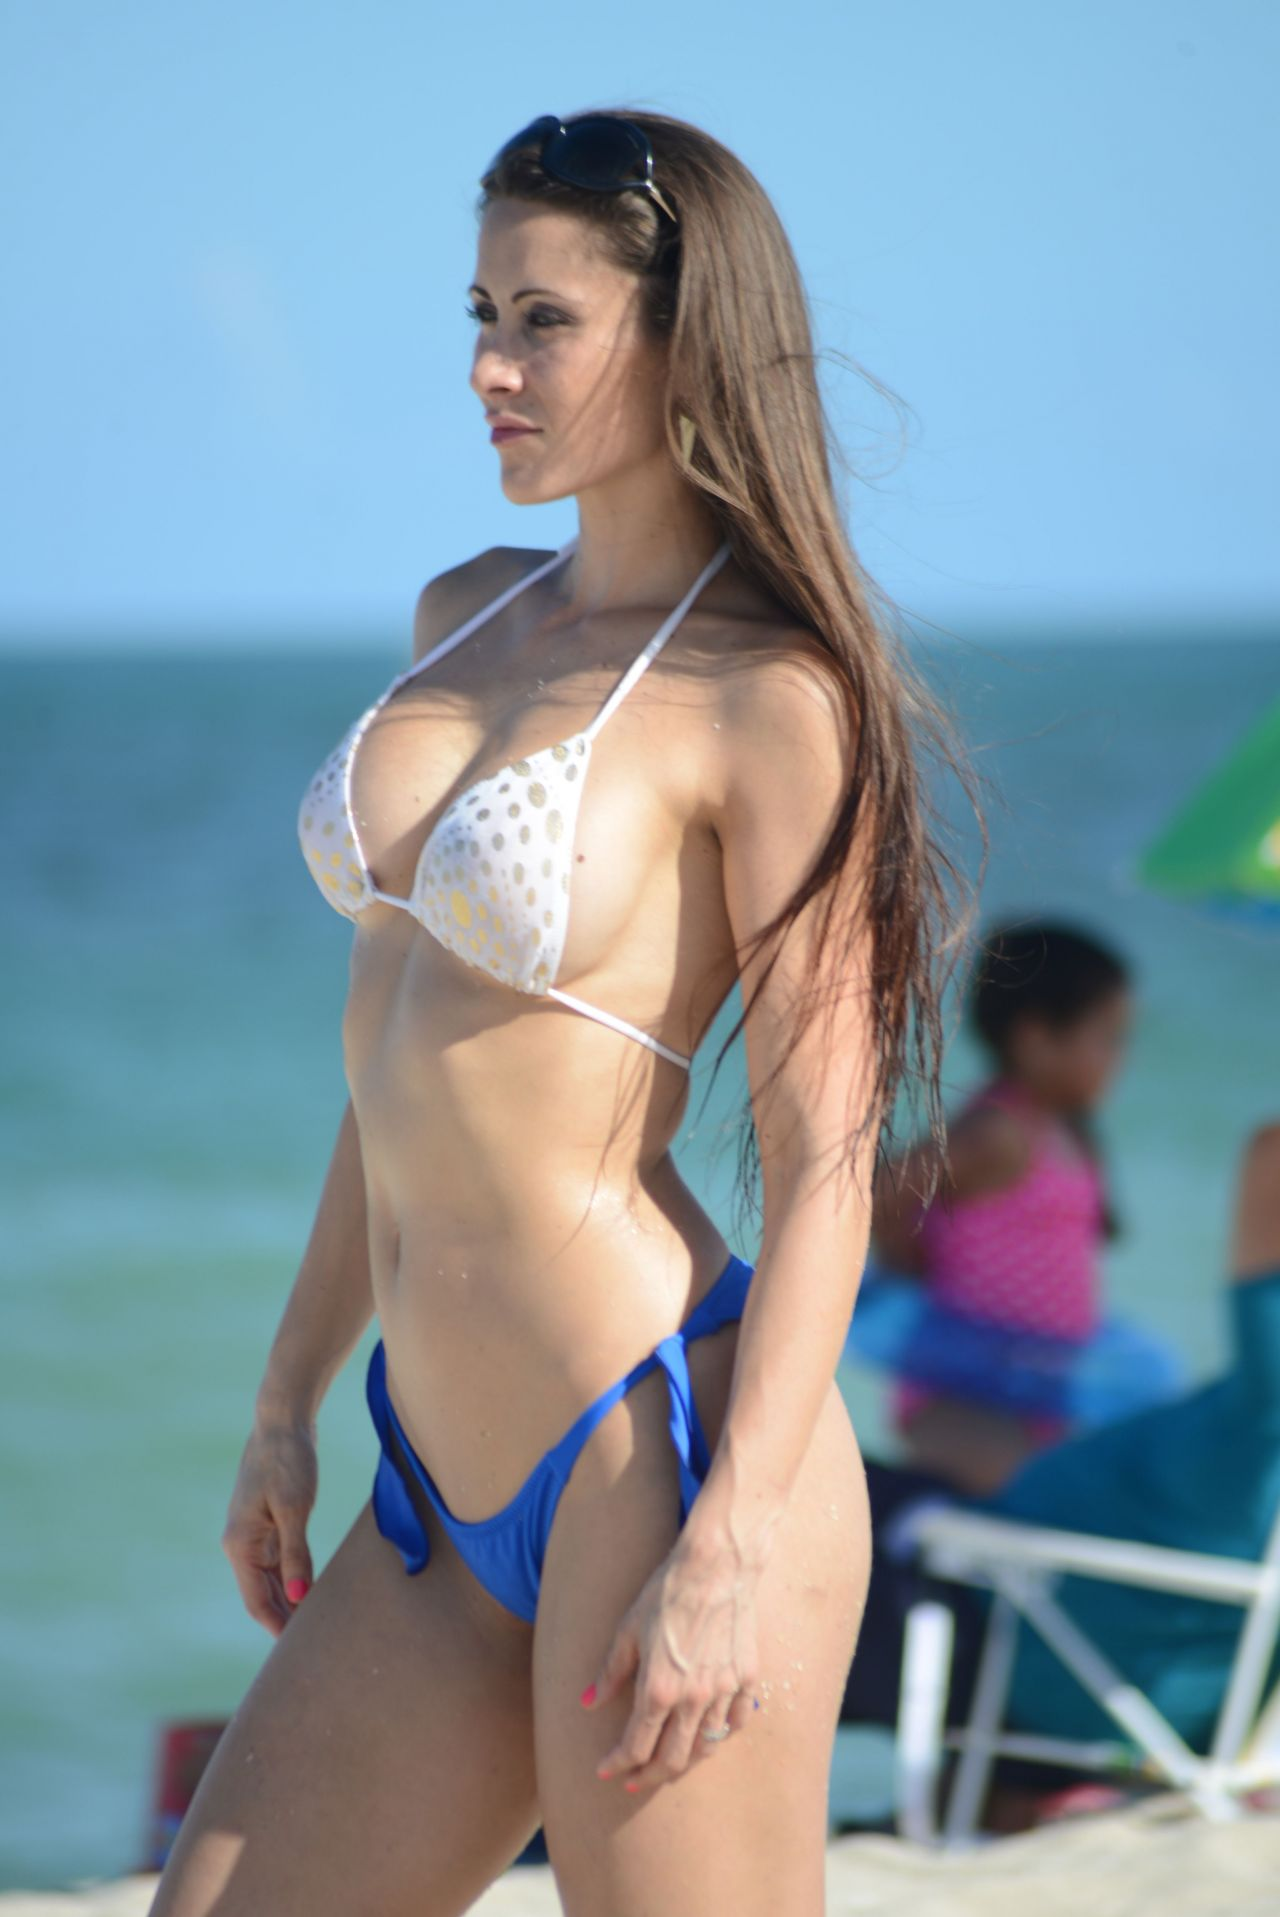 Anais Zanotti anais zanotti bikini photoshoot - beach in miami - september